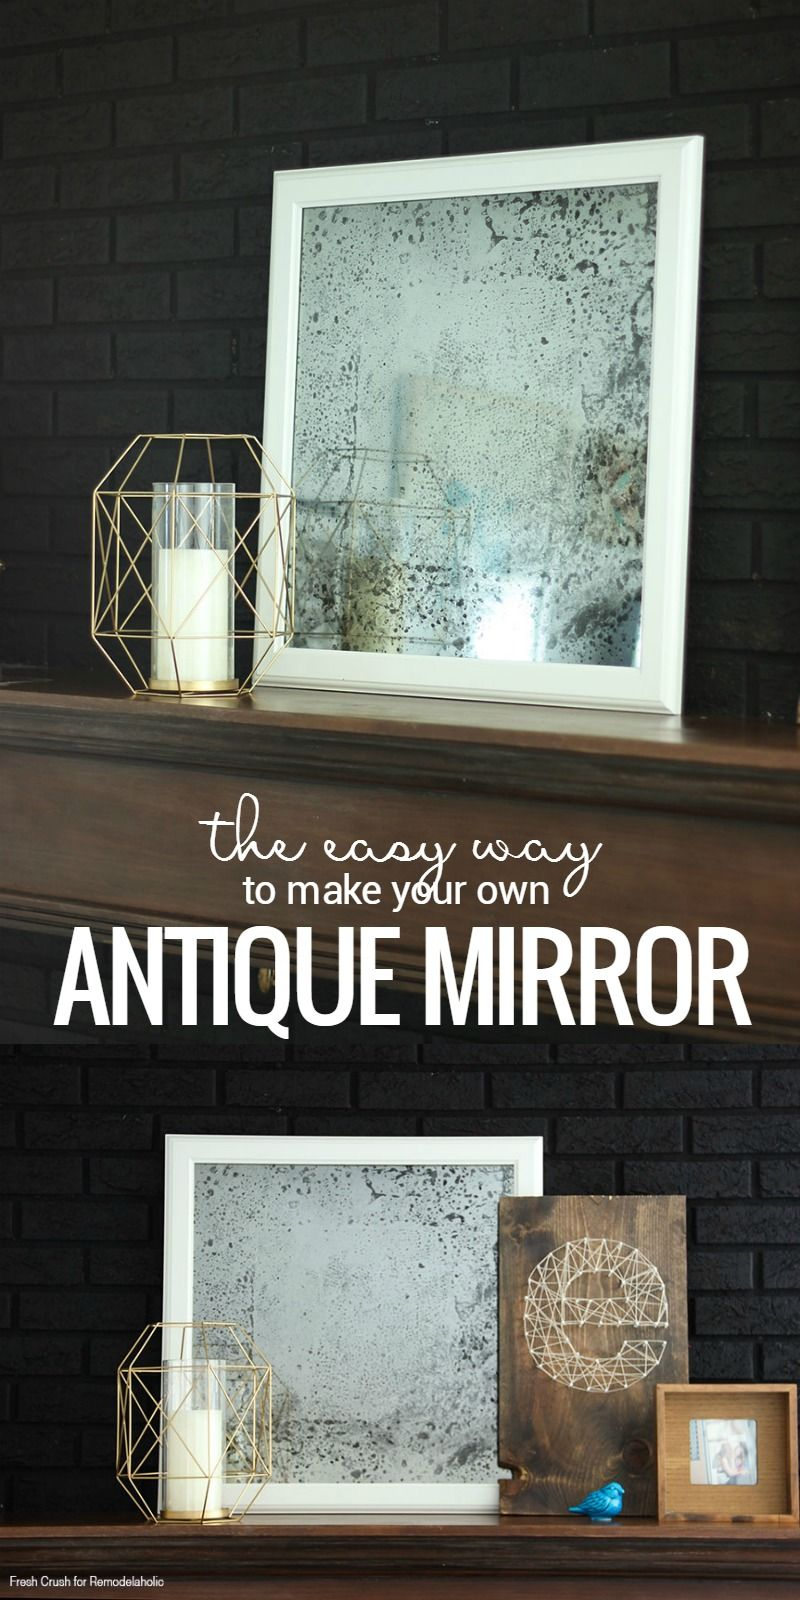 Easy diy antique mirror tutorial ikea hack how to turn a easy diy antique mirror tutorial ikea hack how to turn a picture frame into jeuxipadfo Gallery